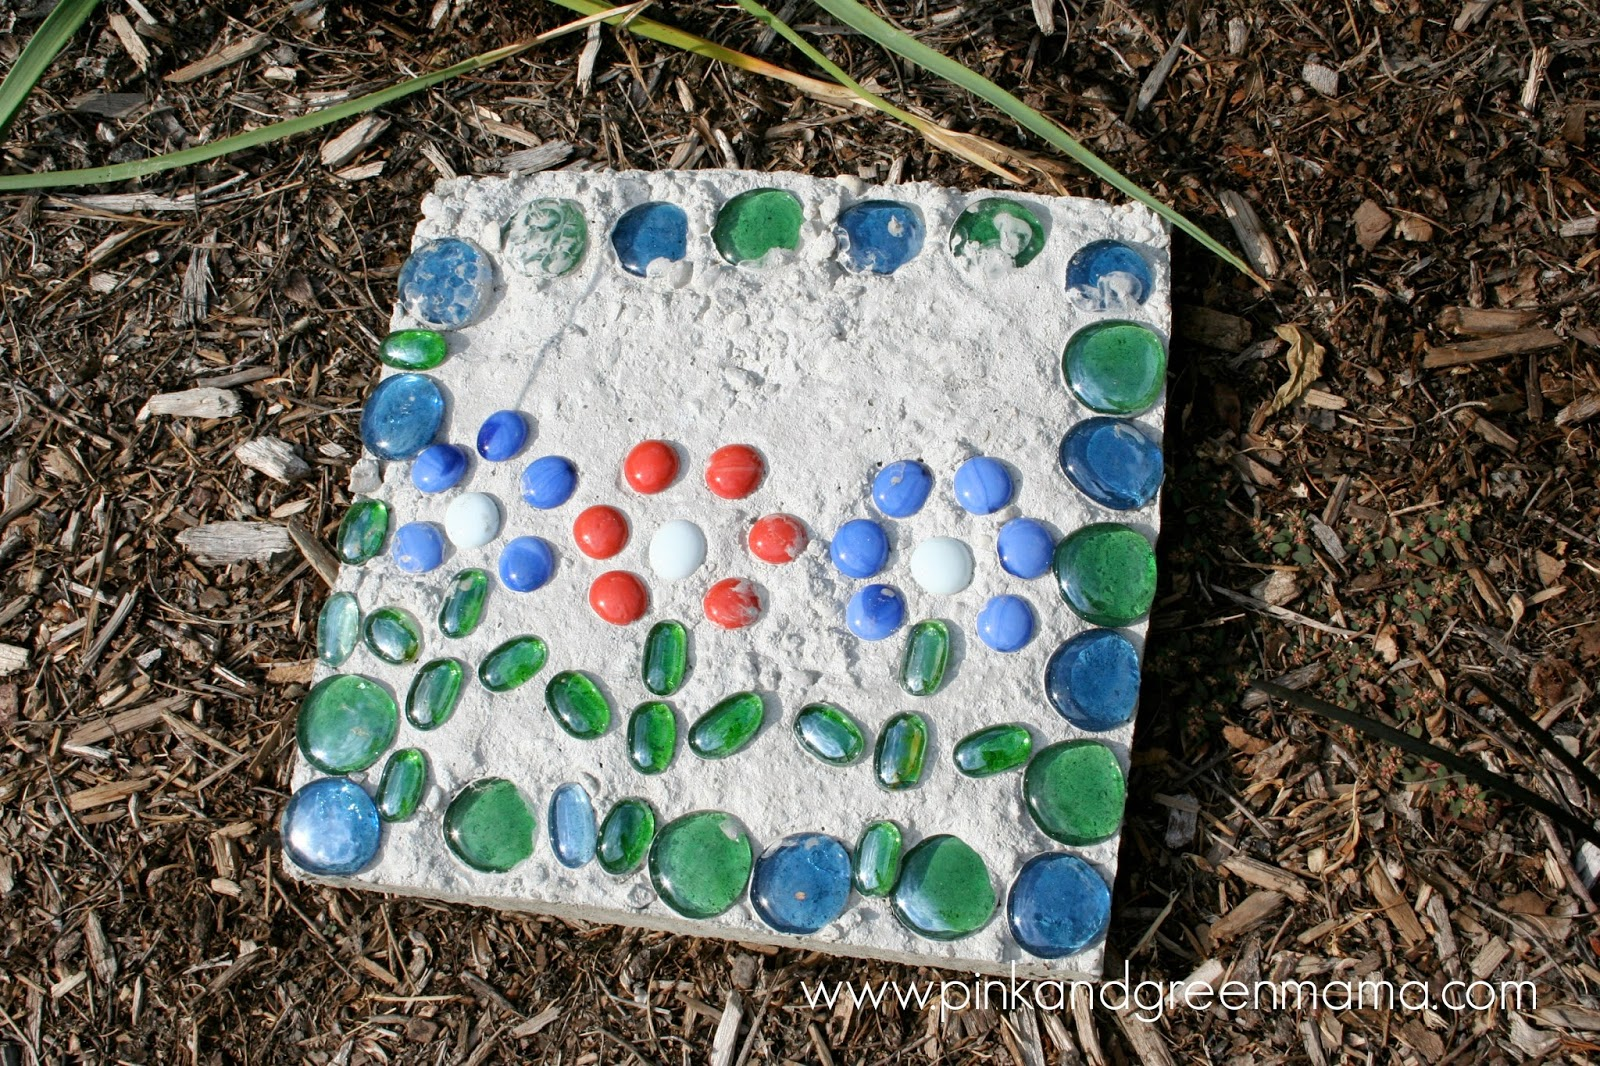 Pink and green mama daddy camp kid friendly cement - Yard stepping stone ideas ...